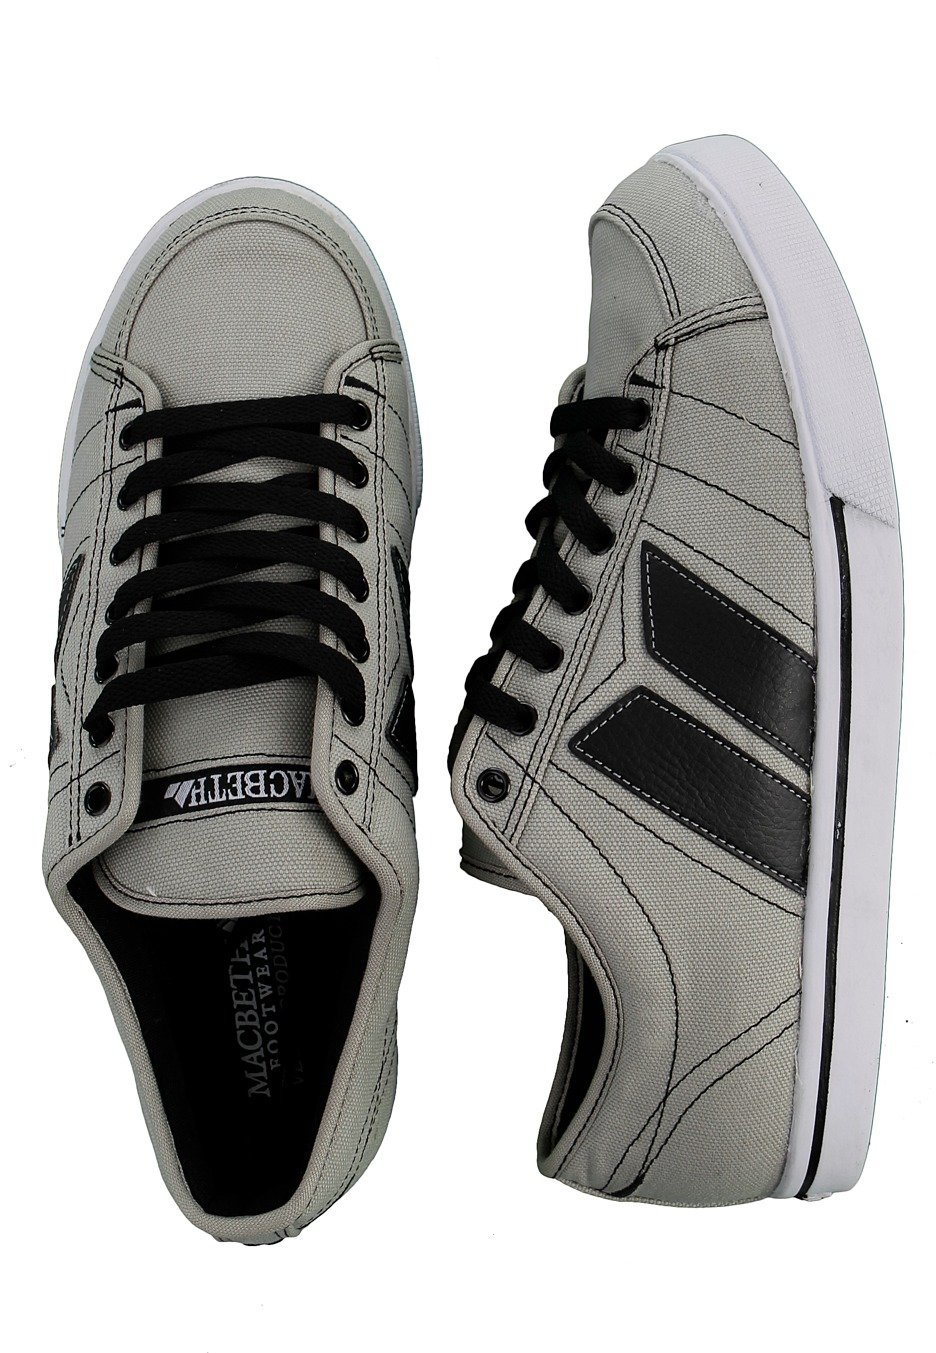 Macbeth Manchester Shoes For Sale